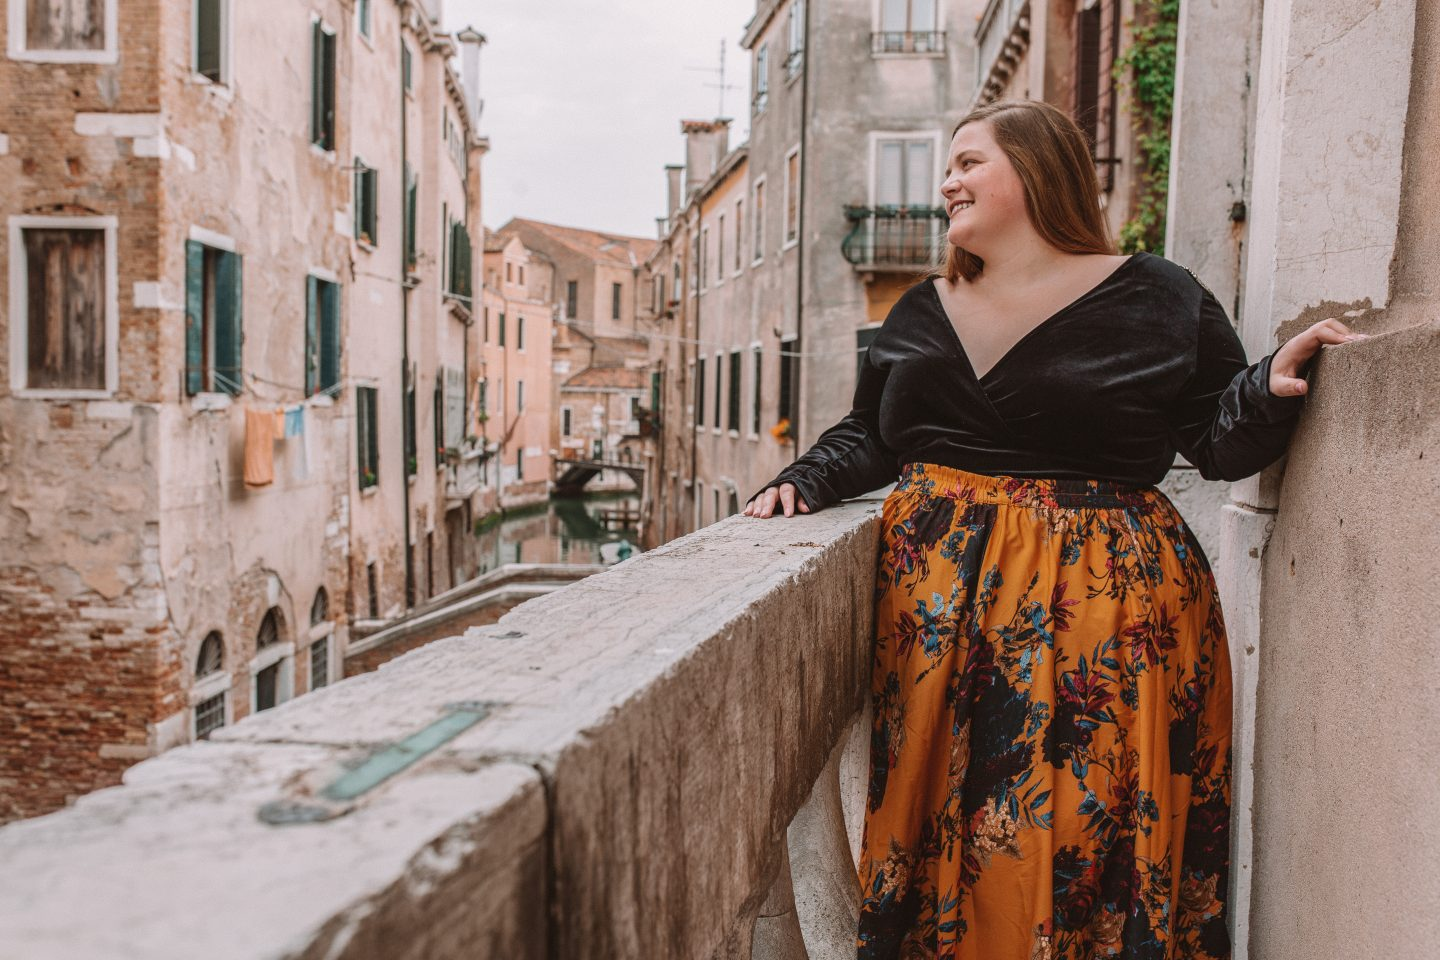 A fashionable plus-sized female posing on a balcony overlooking a canal in Venice, Italy